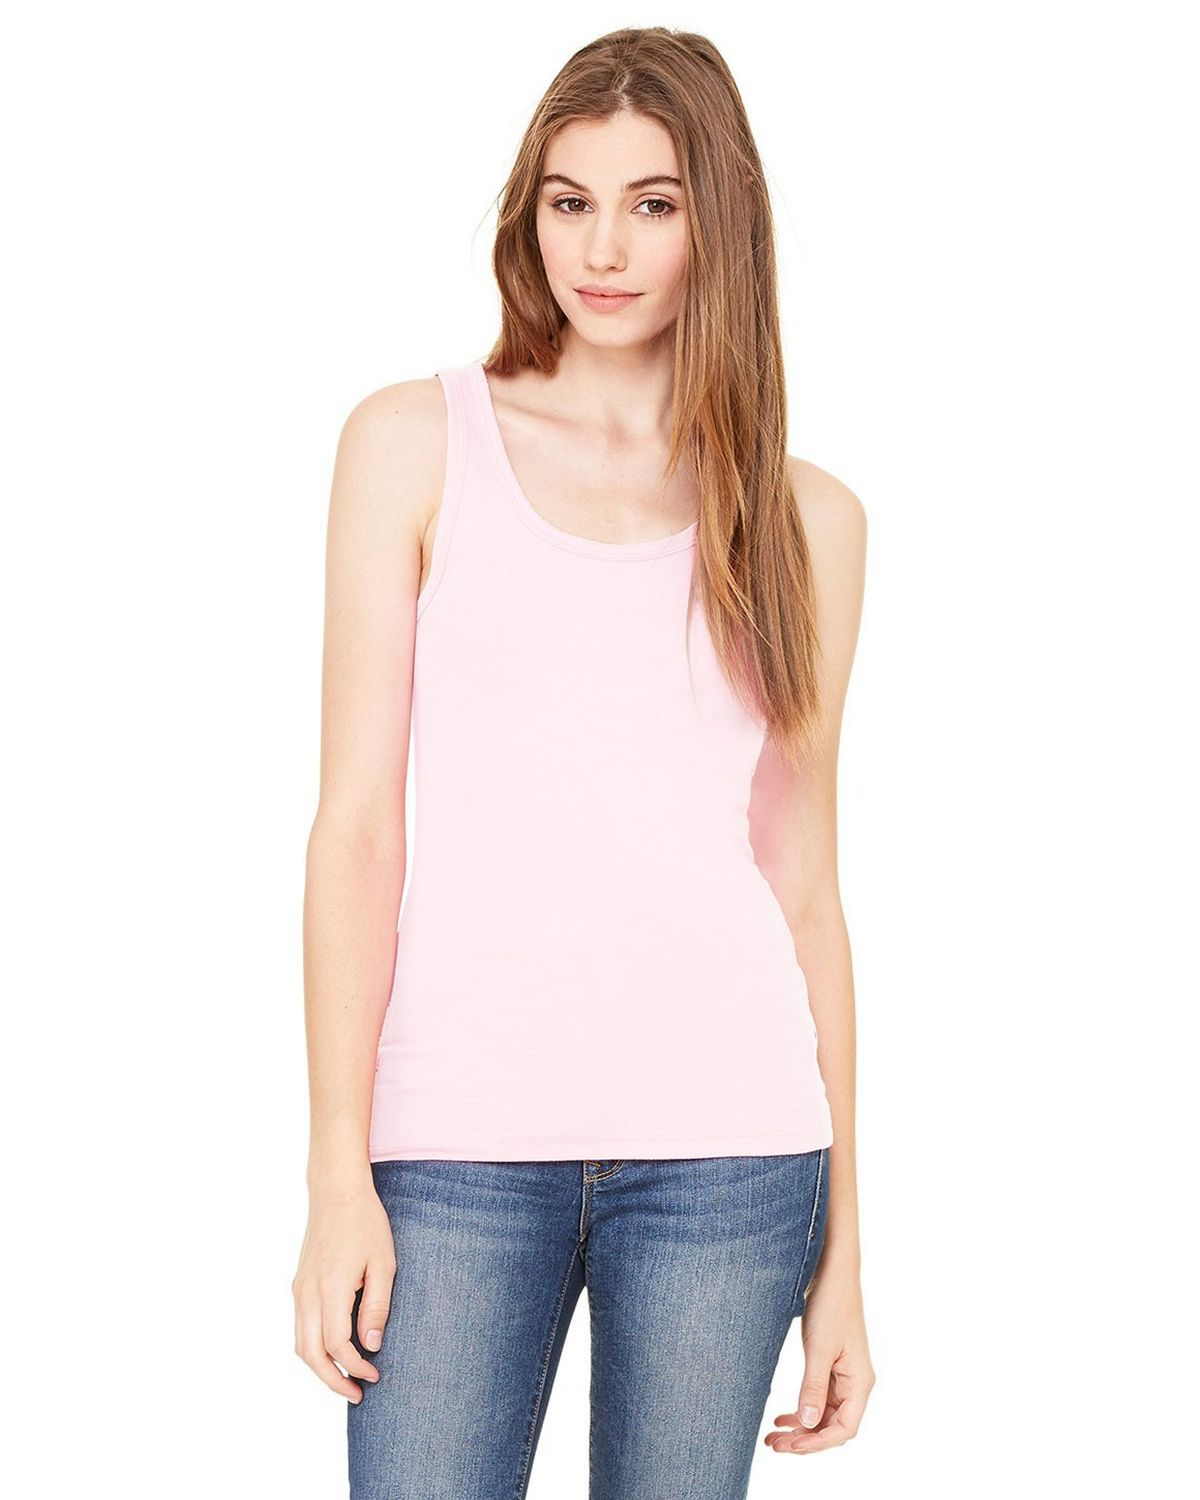 Bella + Canvas 8780 Sheer Rib Longer Tank - Pink - S 8780